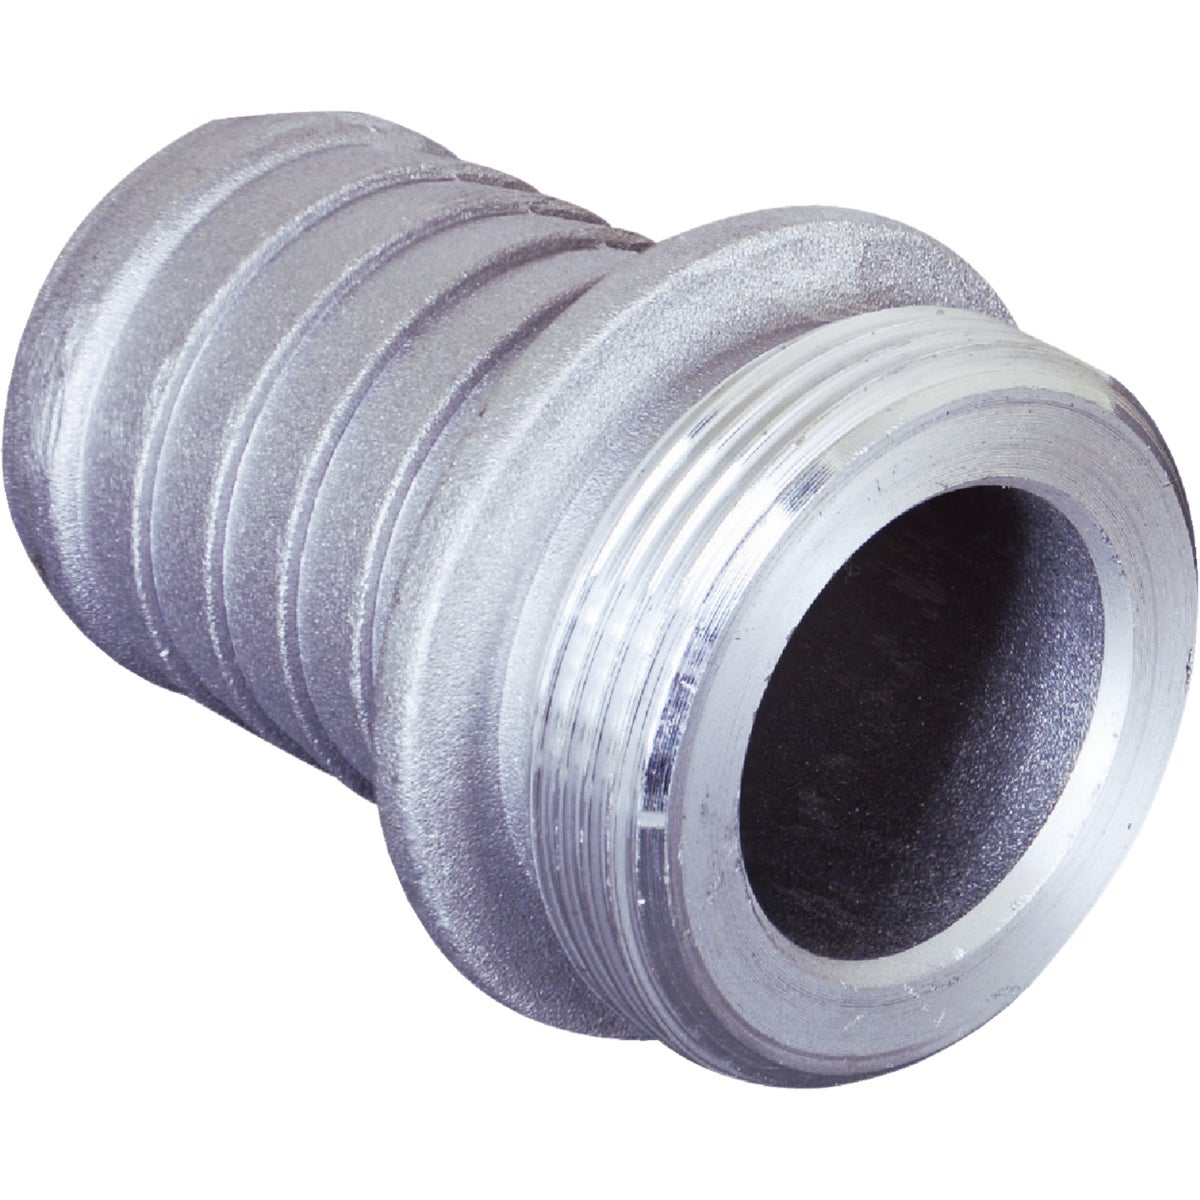 "2"" M PIN LUG COUPLING - 43075500 by Apache Hose Belting"